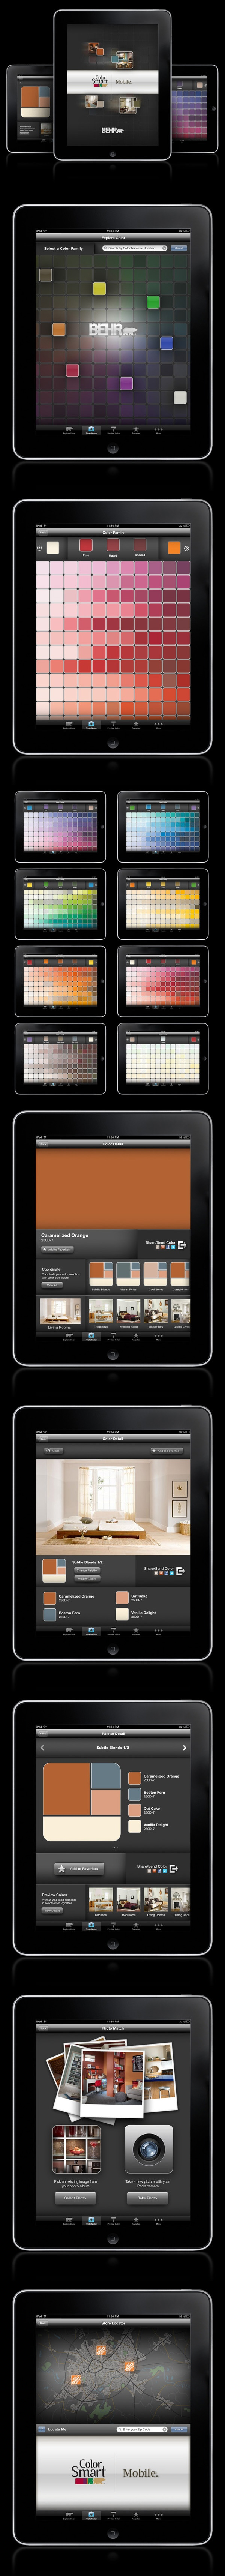 BEHR ColorSmart iPad App – Get inspired! ColorSmart by BEHR™ is now available …